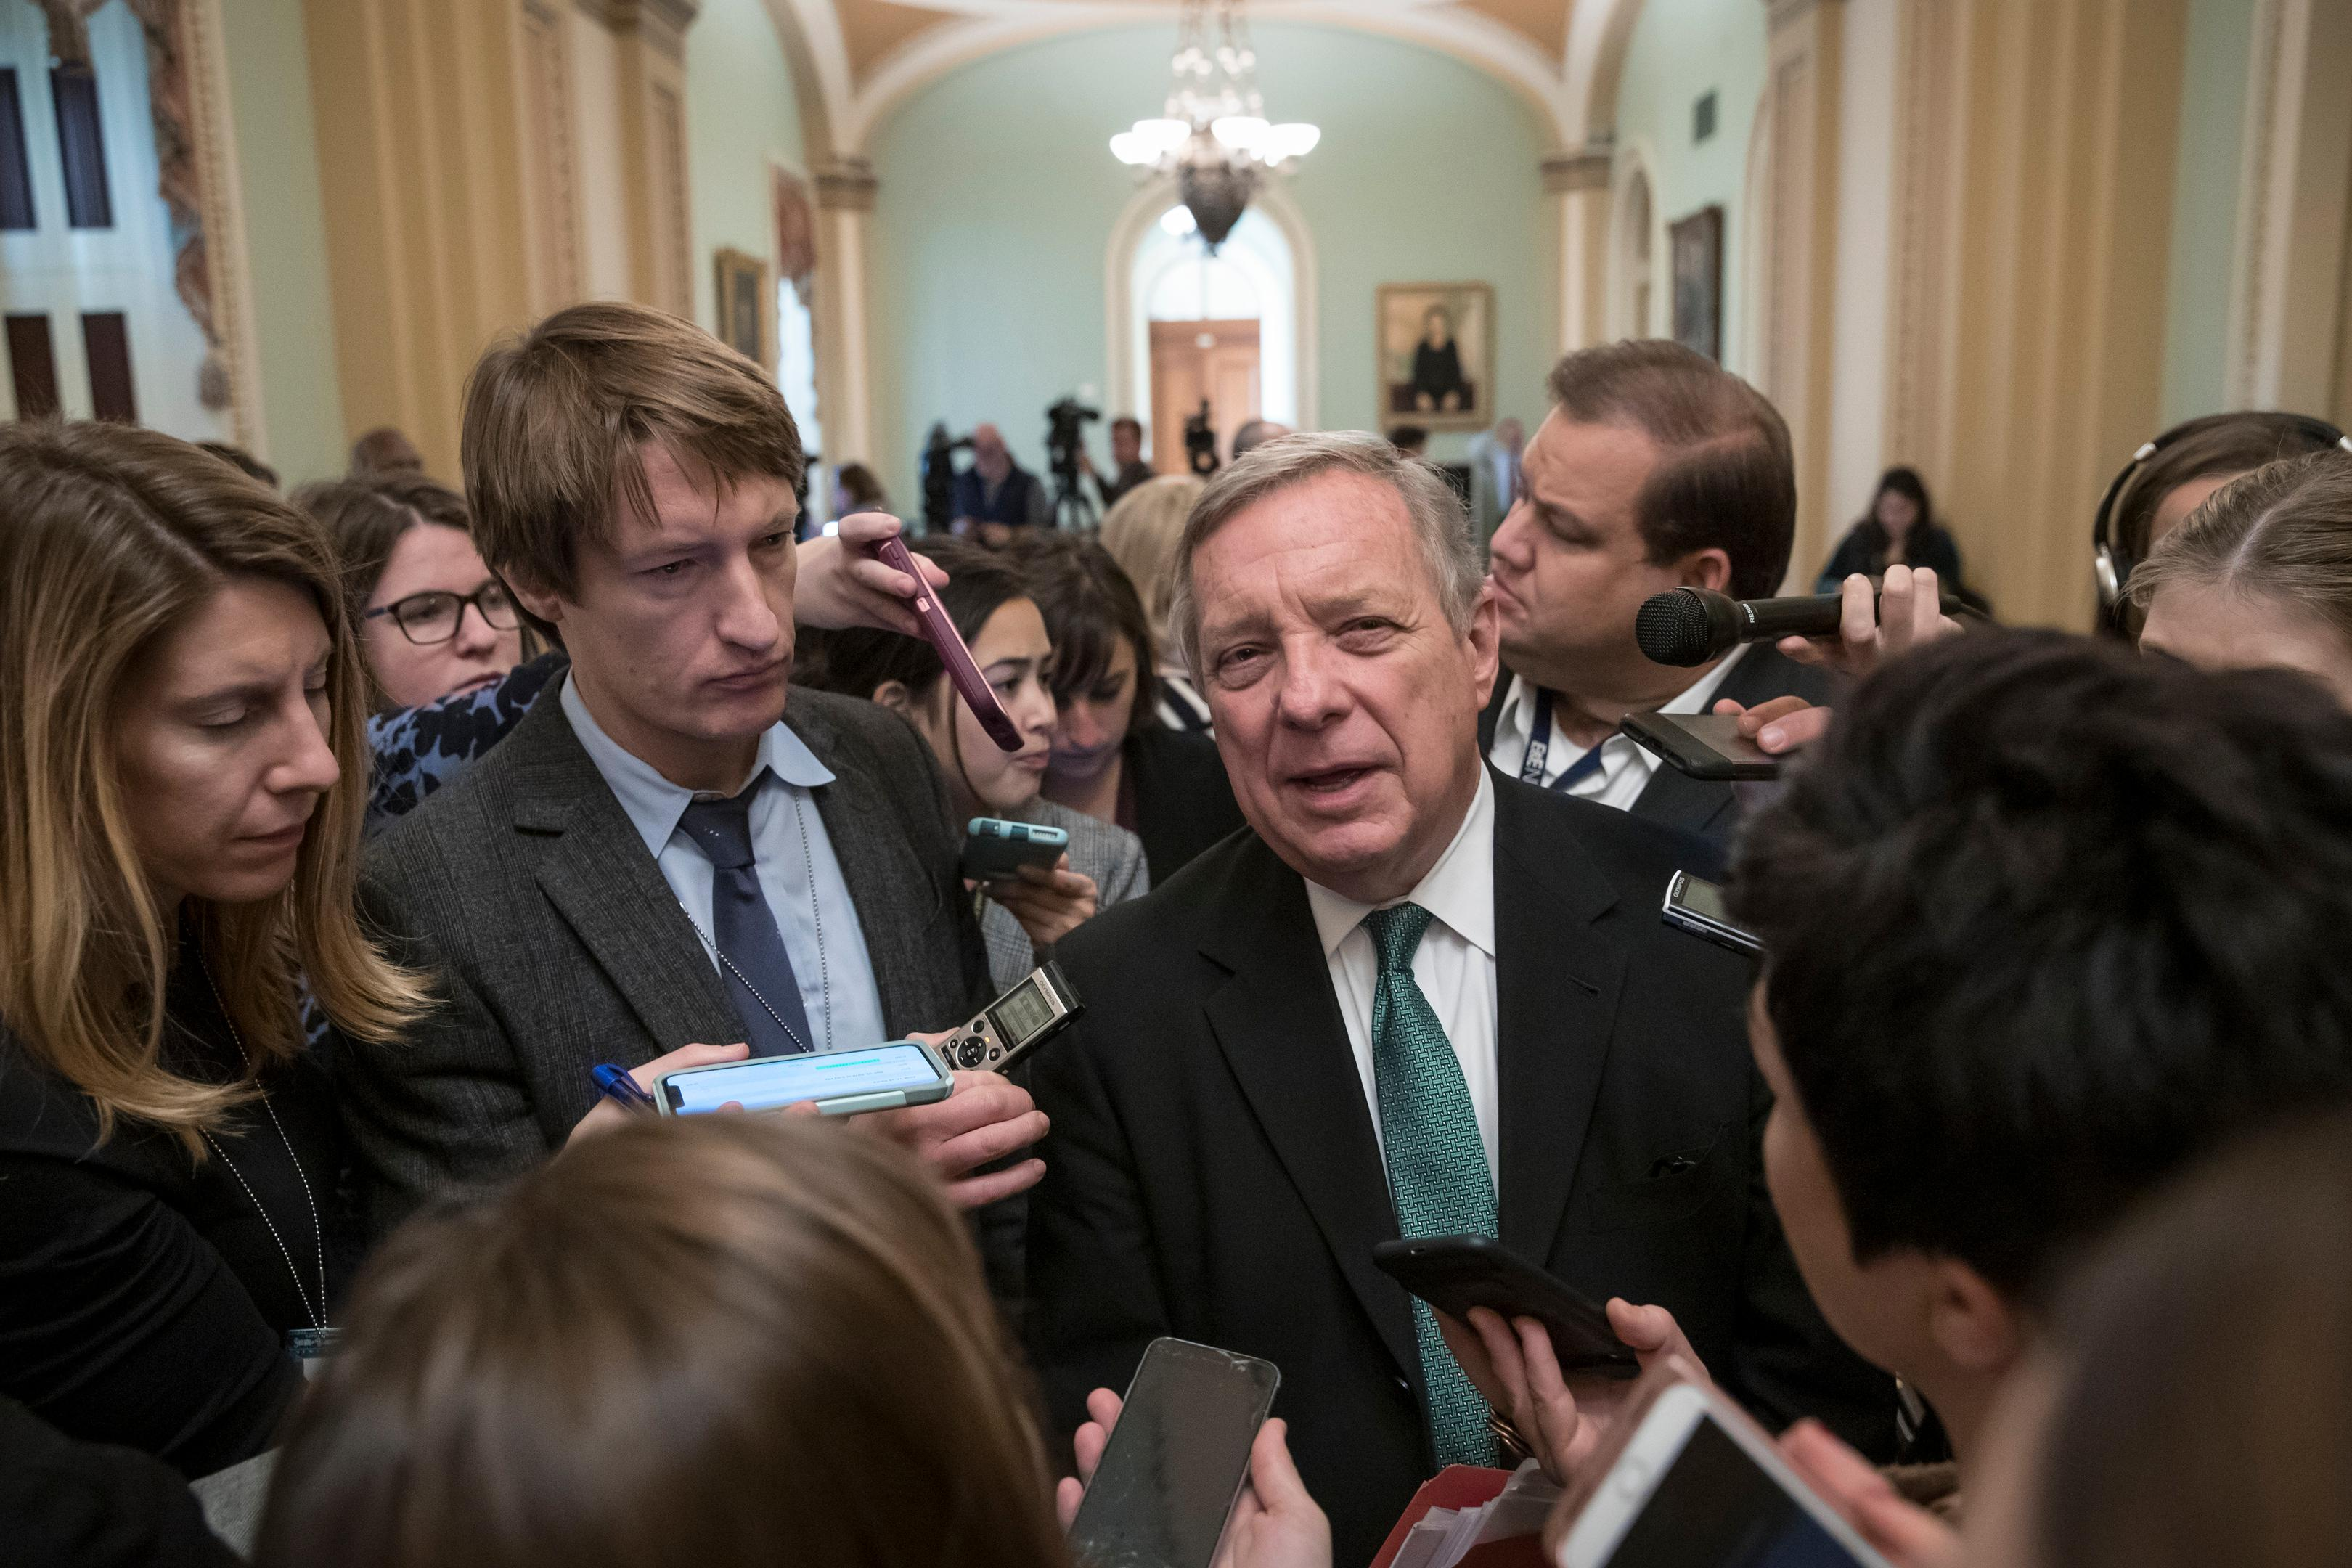 Sen. Dick Durbin, D-Ill., the assistant Democratic leader, is surrounded by reporters asking about the possibility of a partial government shutdown over the border wall funding, at the Capitol in Washington, Tuesday, Dec. 18, 2018. (AP Photo/J. Scott Applewhite)